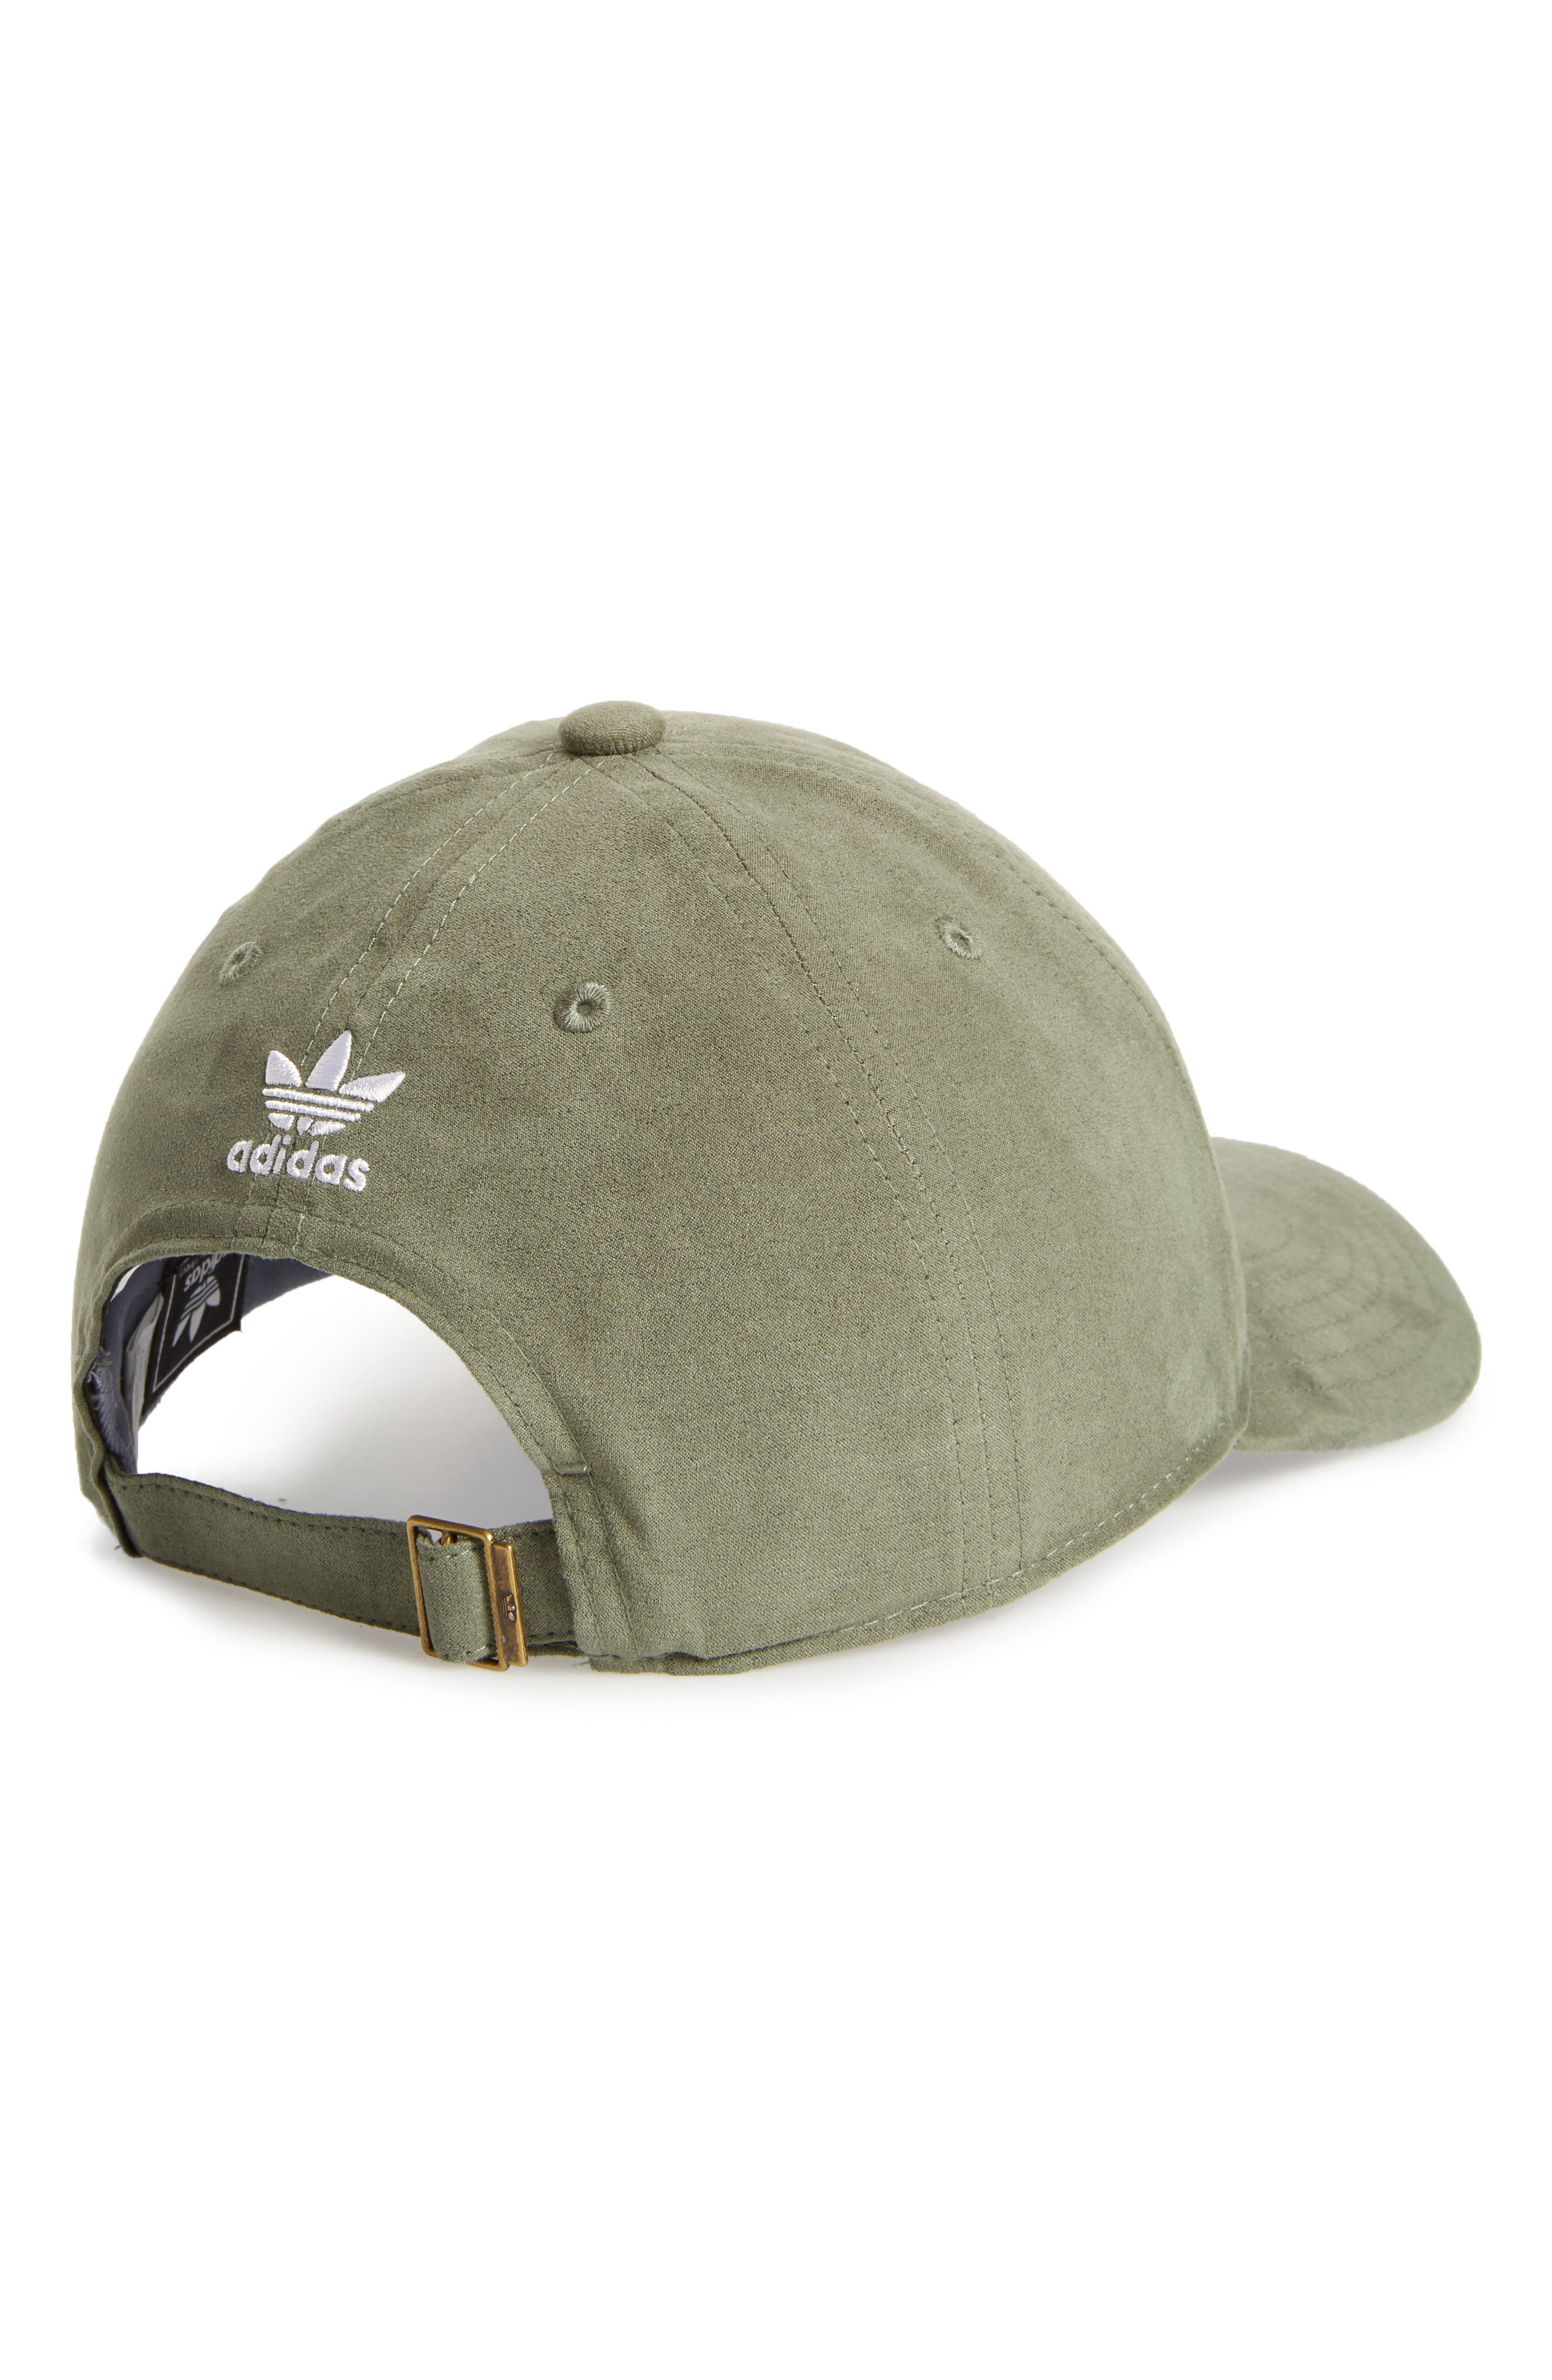 Originals Relaxed Strap-Back Cap,                             Alternate thumbnail 2, color,                             Base Green Suede